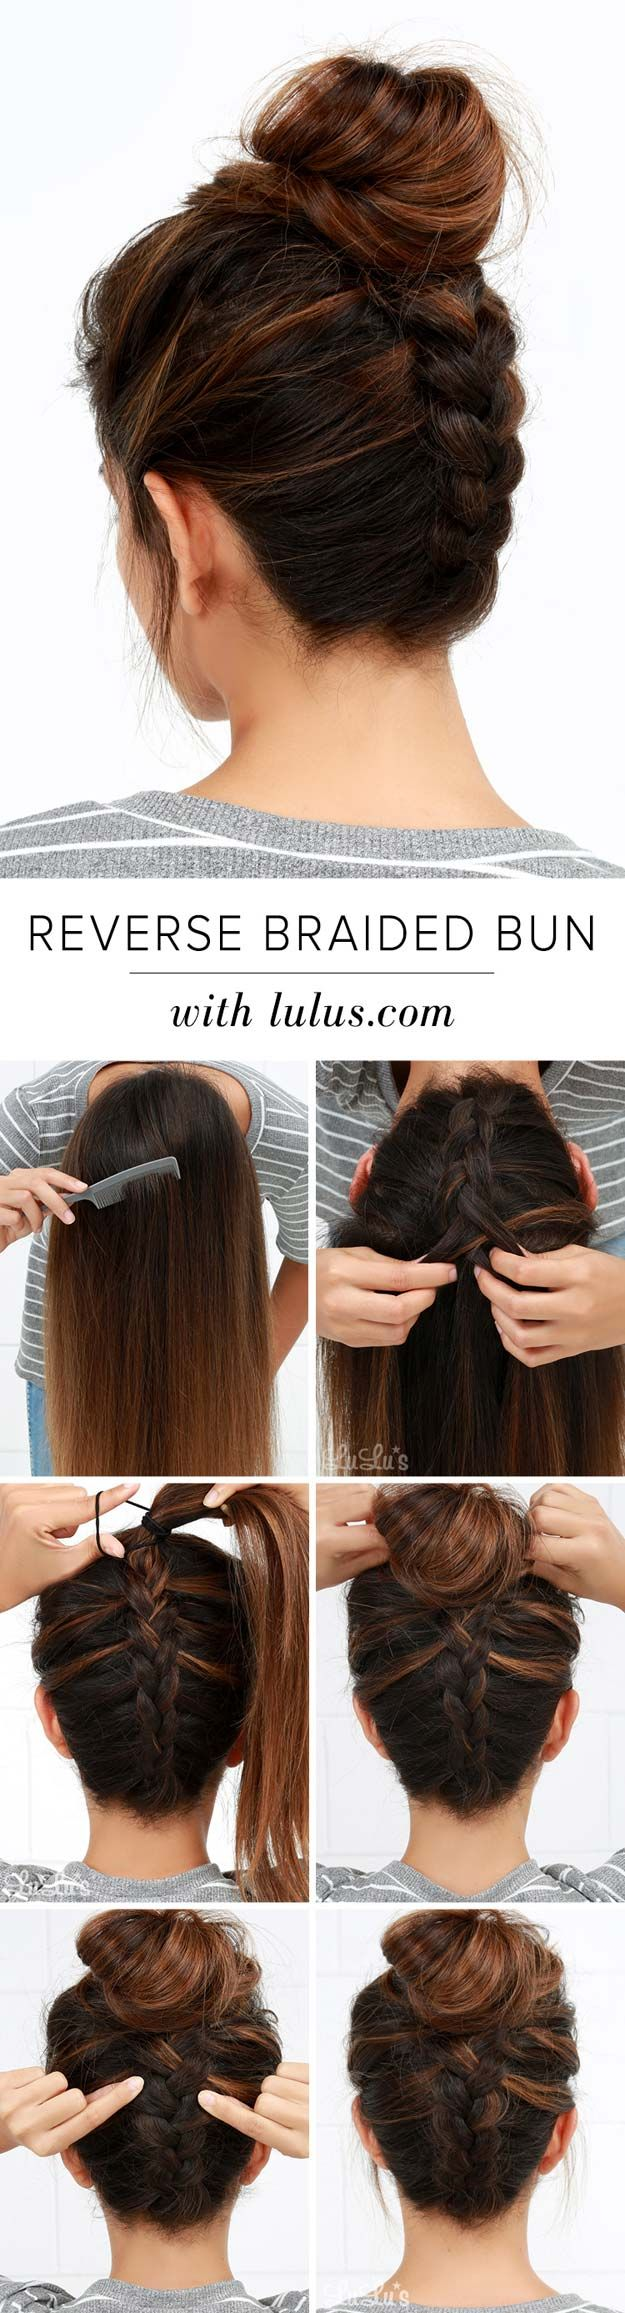 41 Diy Cool Easy Hairstyles That Real People Can Do At Home Diy Hairstyles Easy Hair Styles Diy Hairstyles